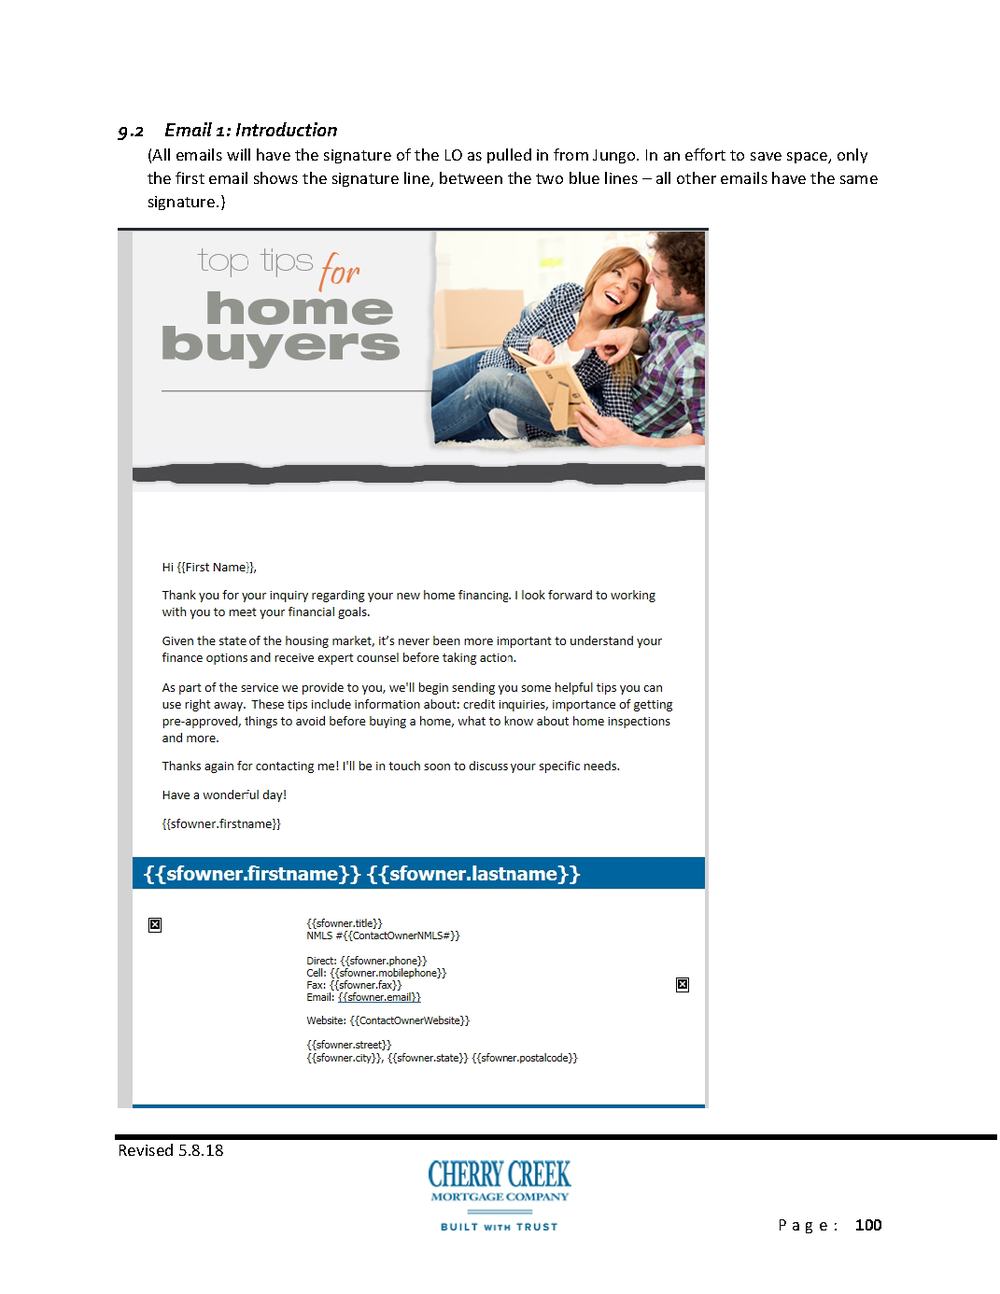 Jungo_Email_Drip_Campaigns-Consumers_D1O6plI_Page_100.png